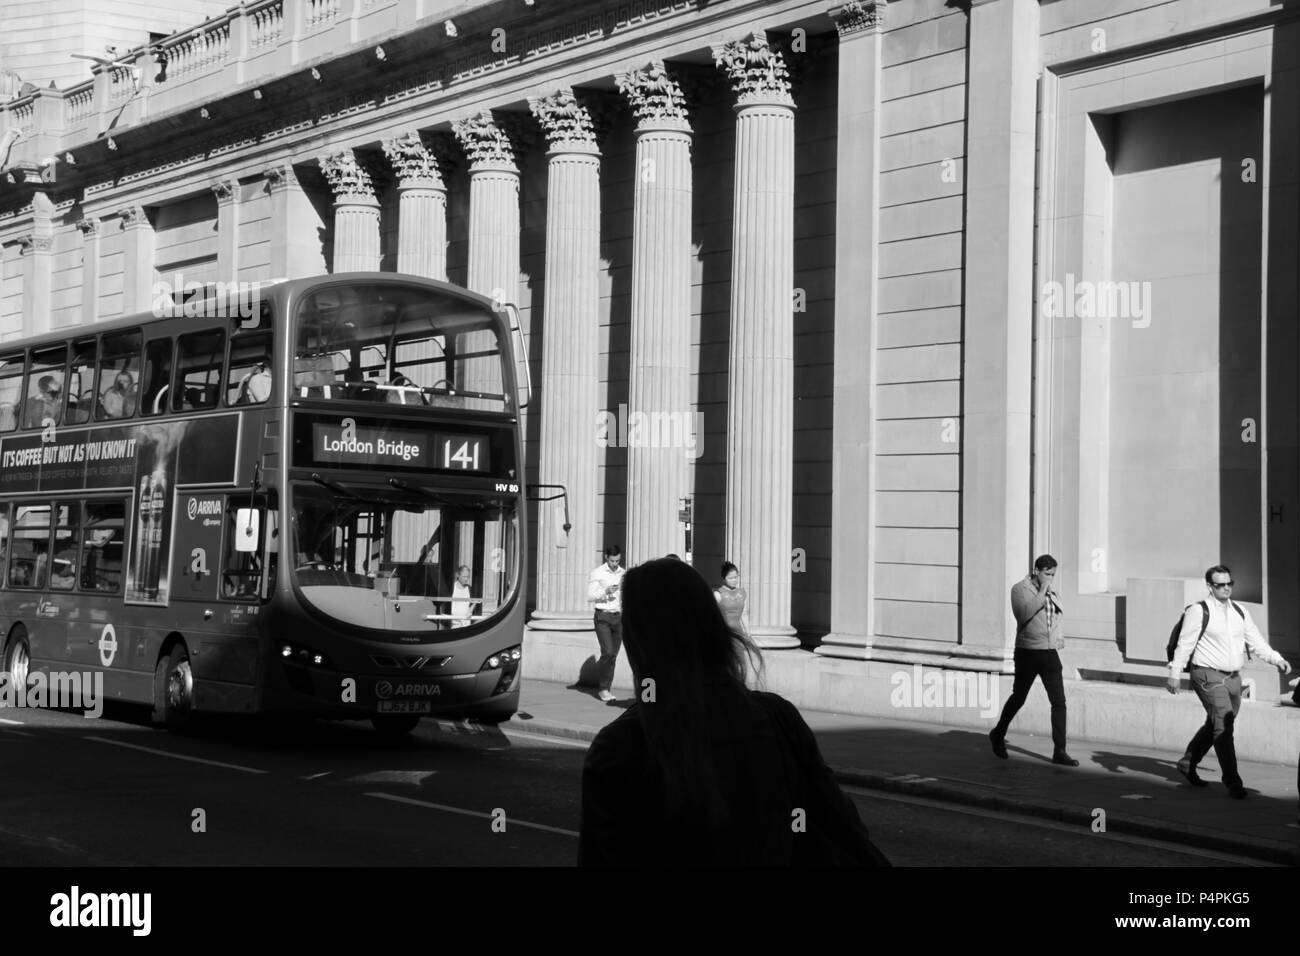 Commuters and office workers scurrying to work past the entrance of The Bank of England in the financial district of London, England, UK, PETER GRANT - Stock Image